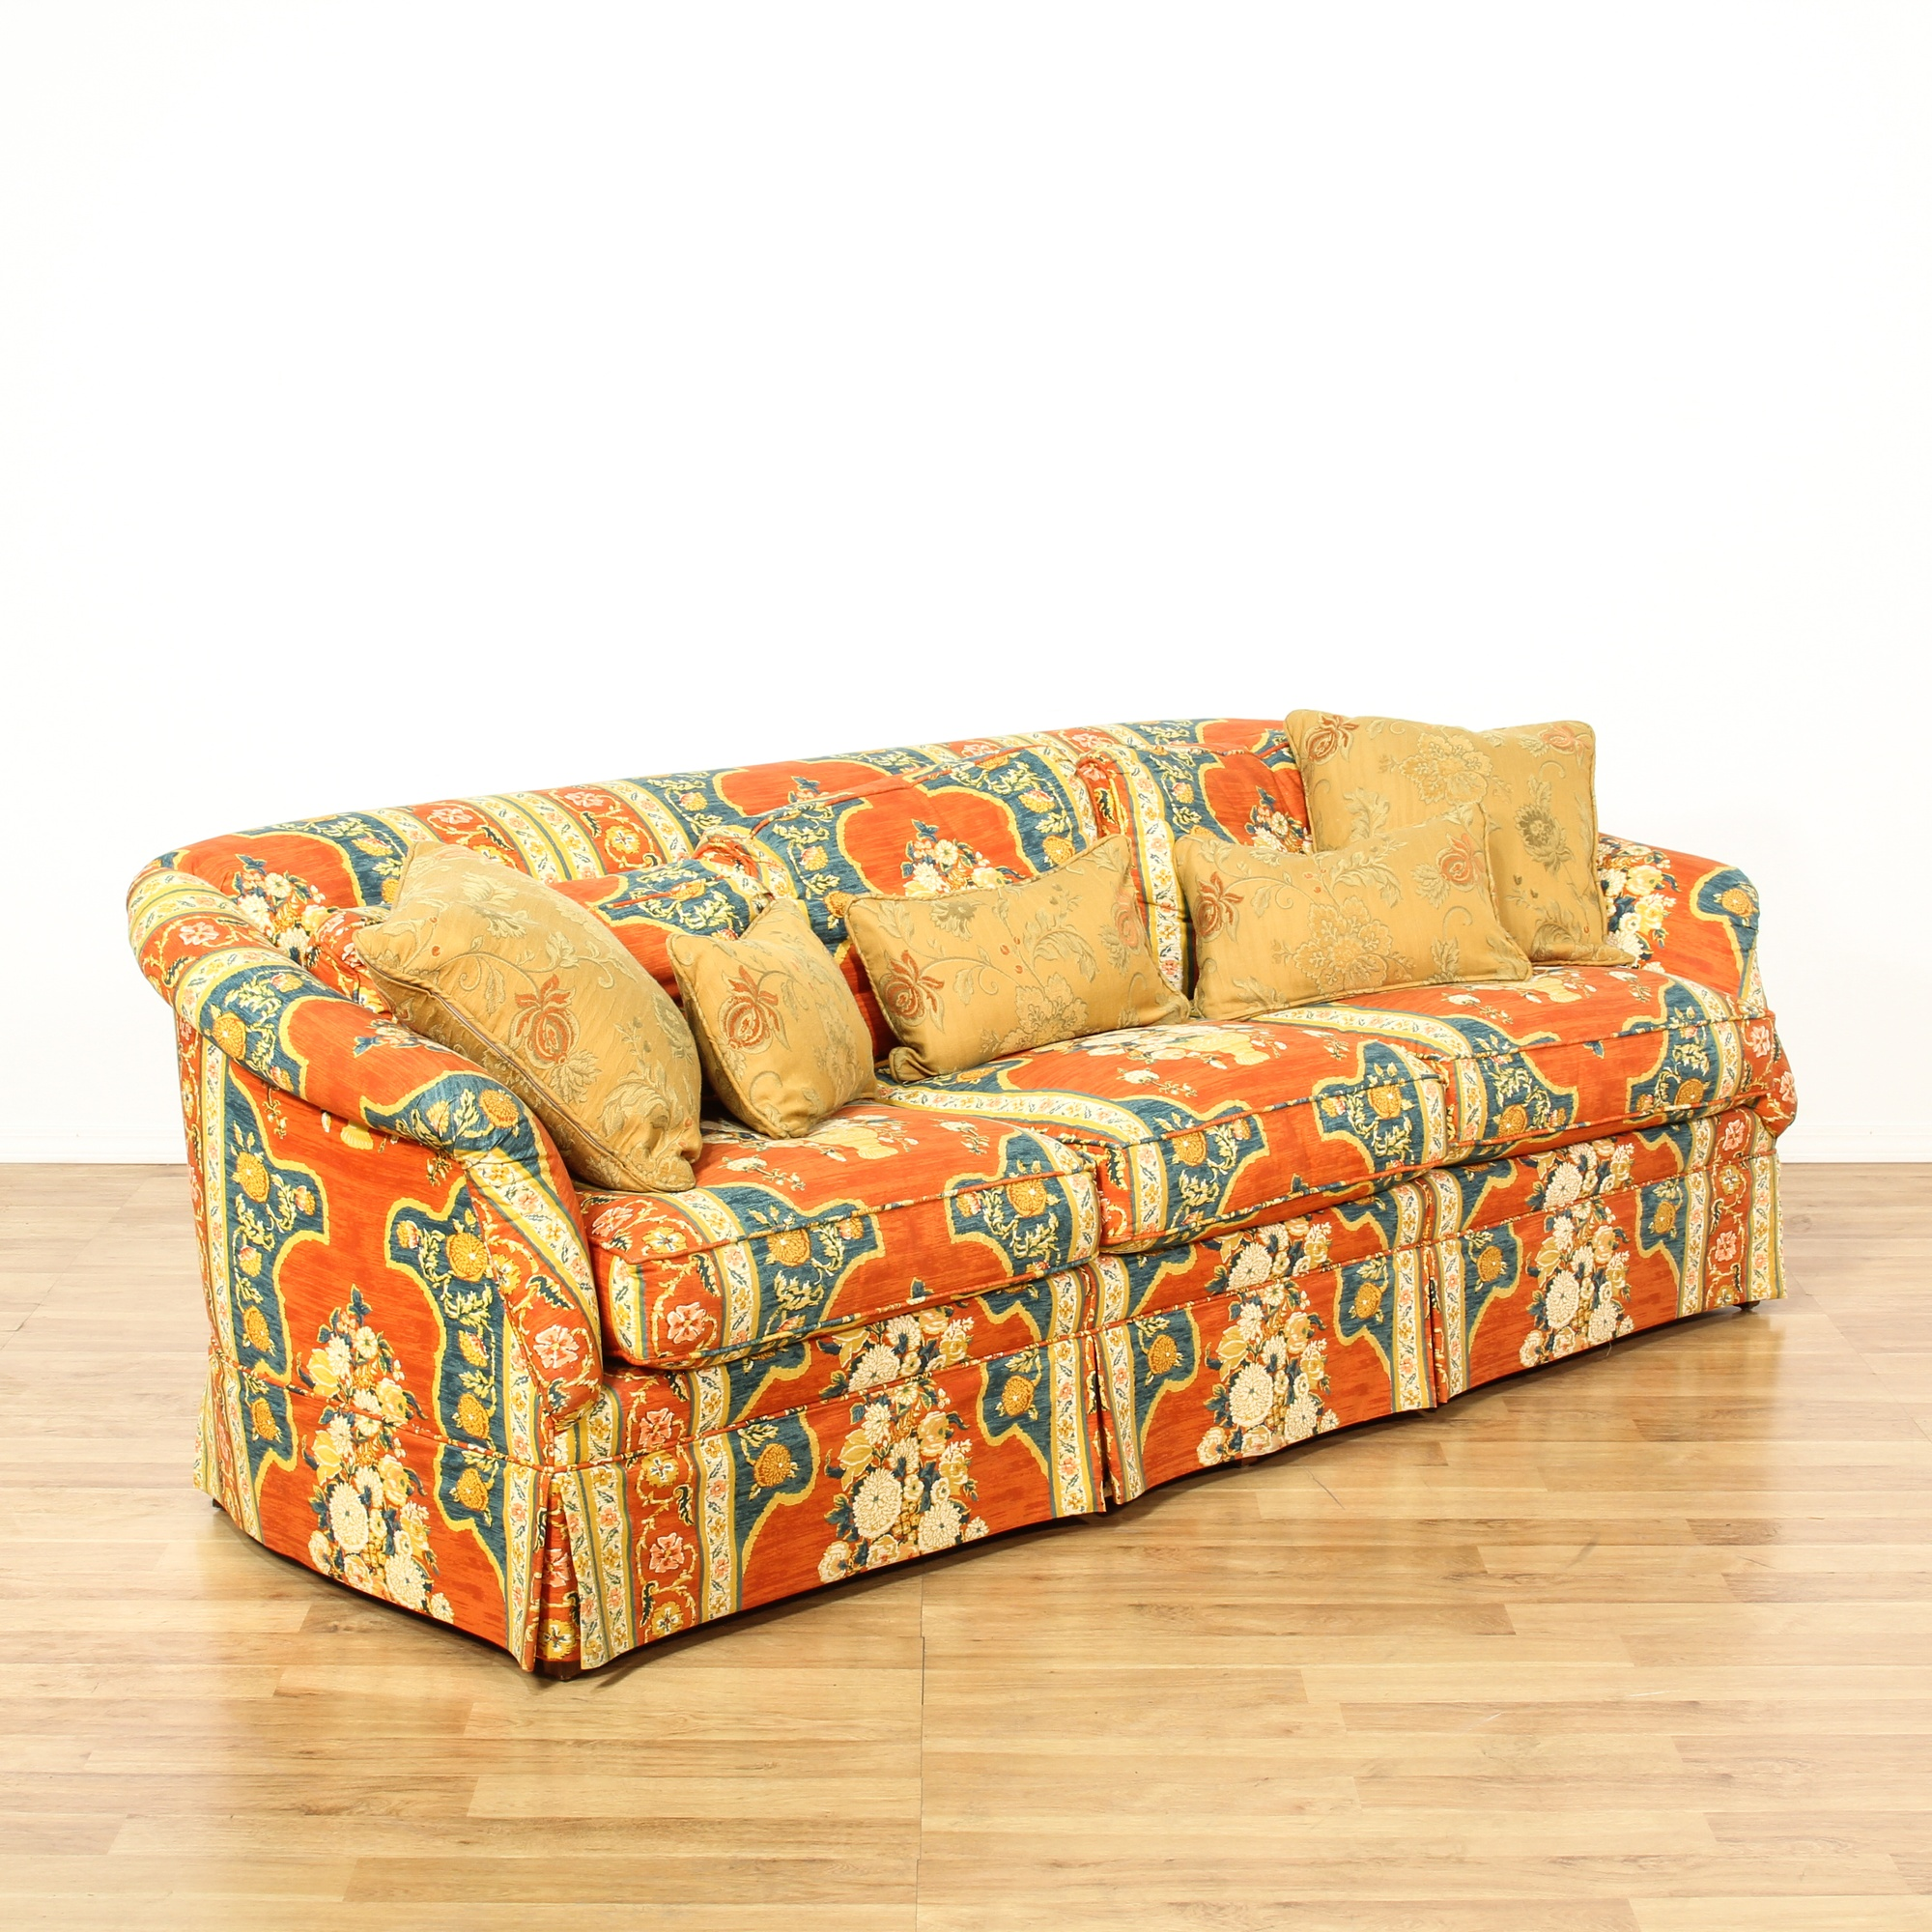 Bold Red Floral Striped Upholstered Sofa Loveseat Vintage Furniture San Diego Los Angeles